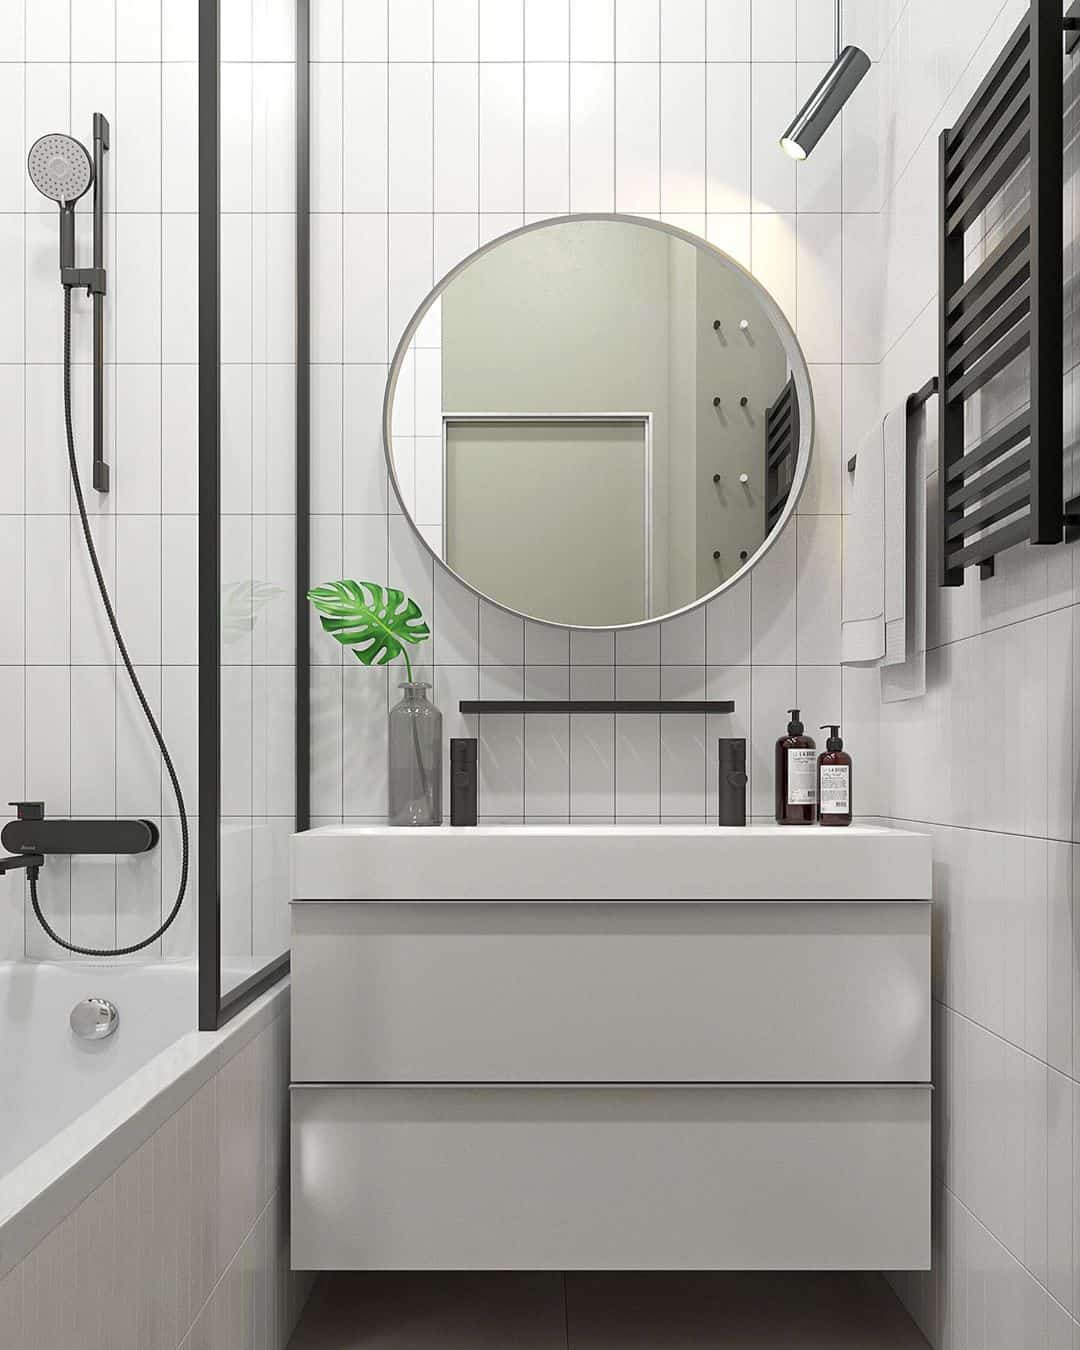 Bathroom trends 2020: How to create a comfortable bathroom design 2020